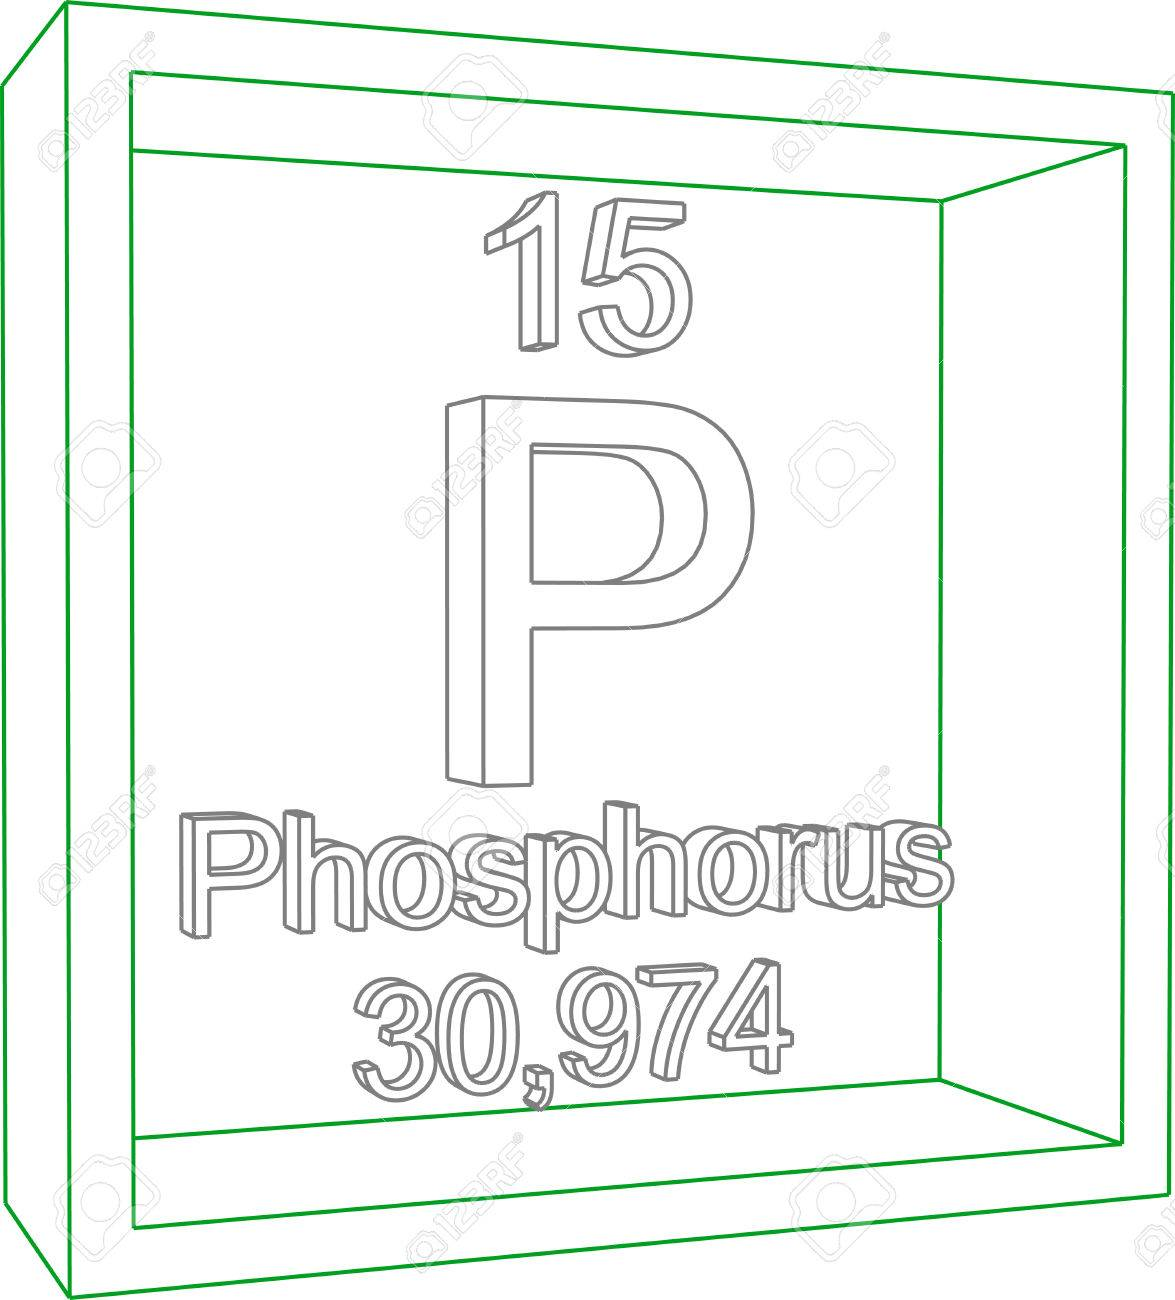 Phosphorus on periodic table image collections periodic table images phosphorus on periodic table choice image periodic table images phosphorus on periodic table choice image periodic gamestrikefo Image collections